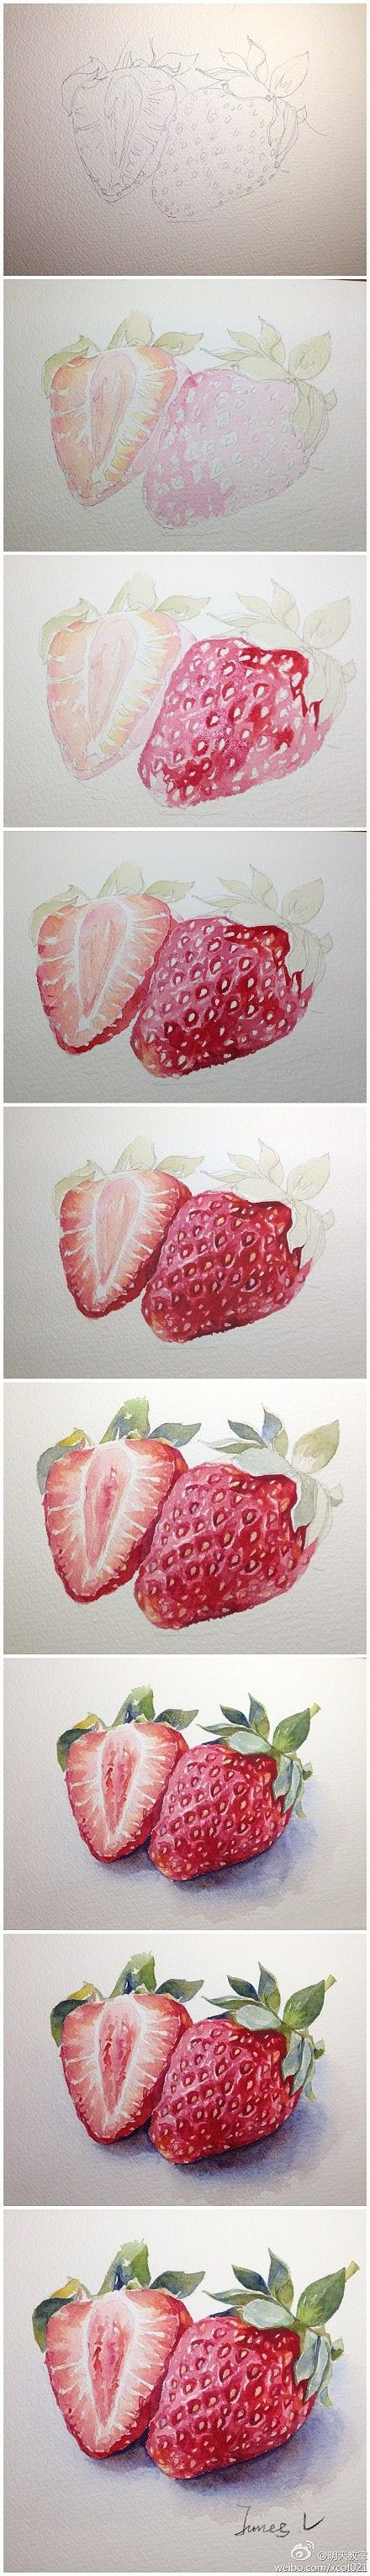 Strawberry watercolor art! My favorite fruit drawn with my favorite medium